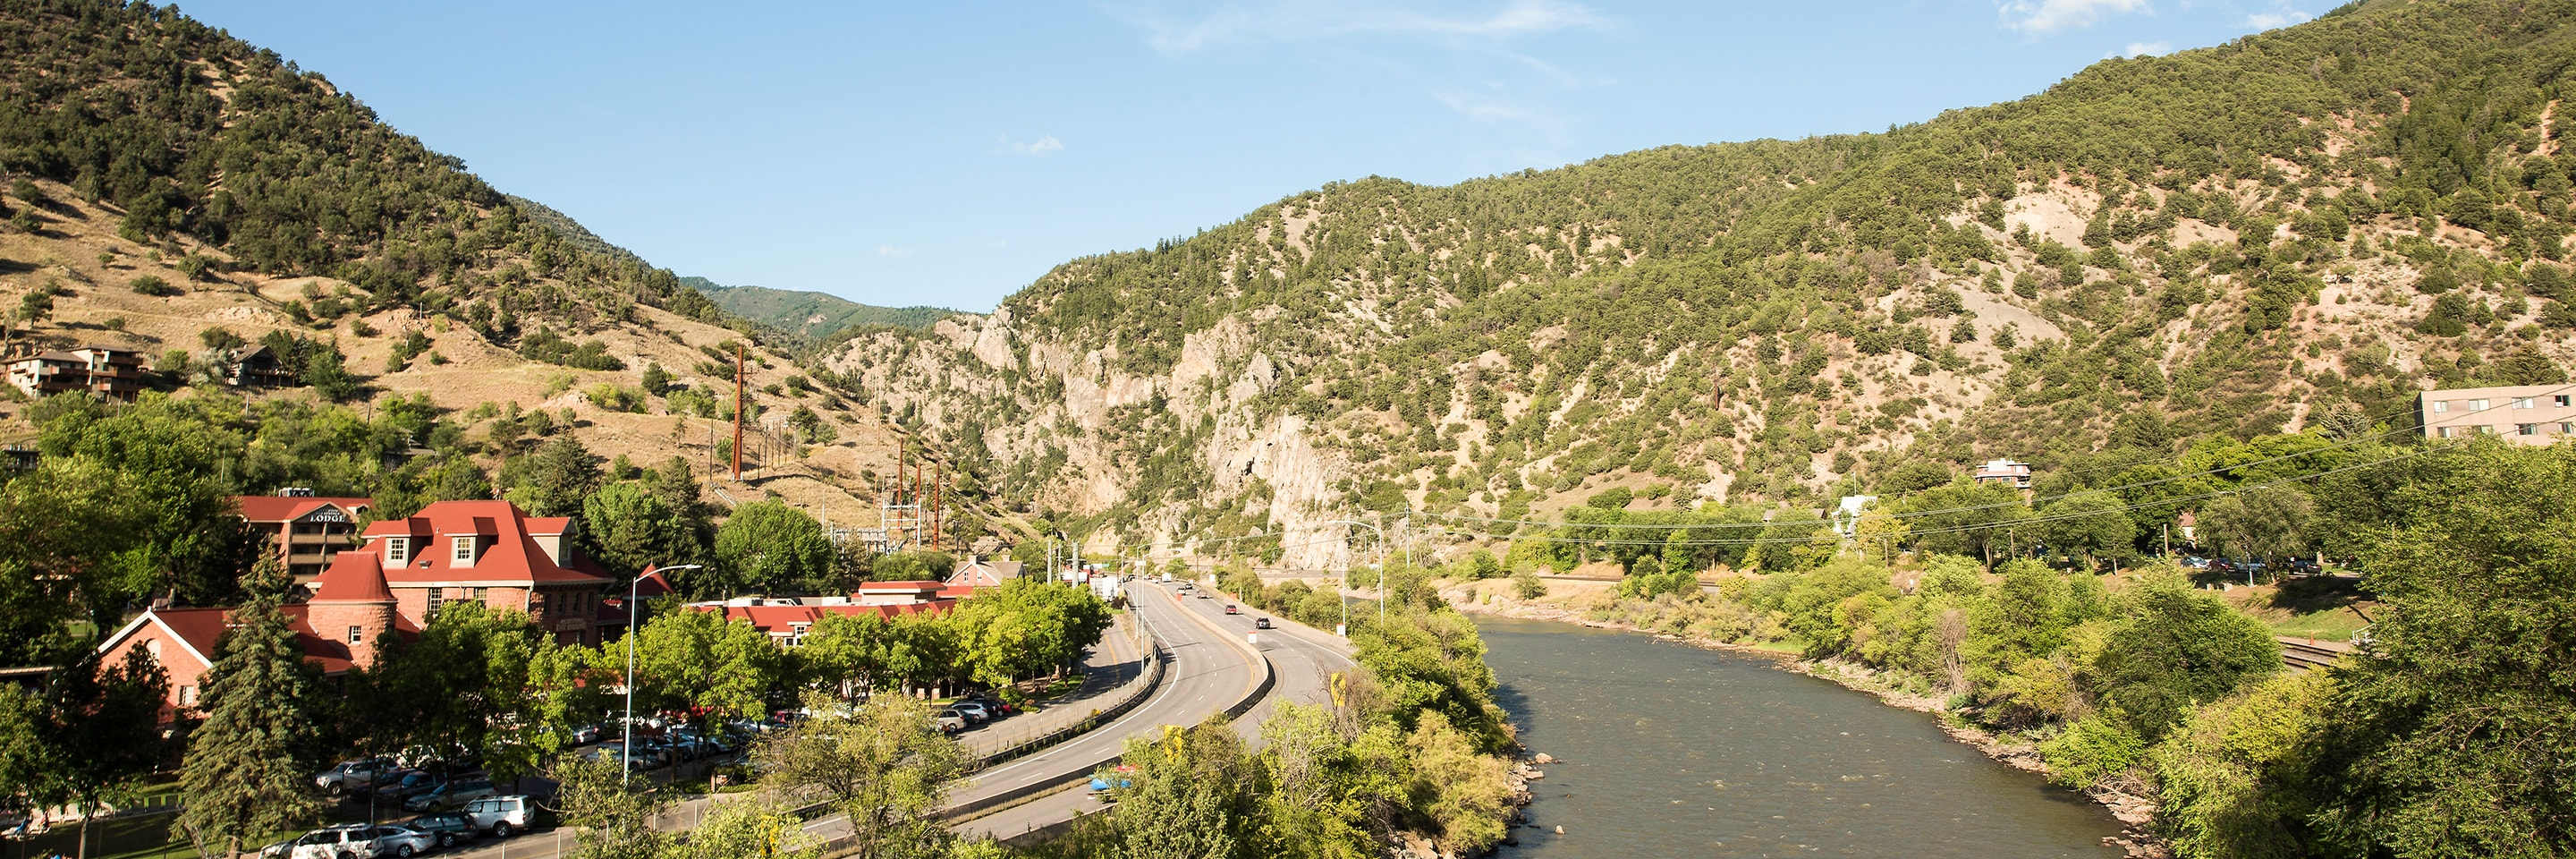 Hotels in Glenwood Springs